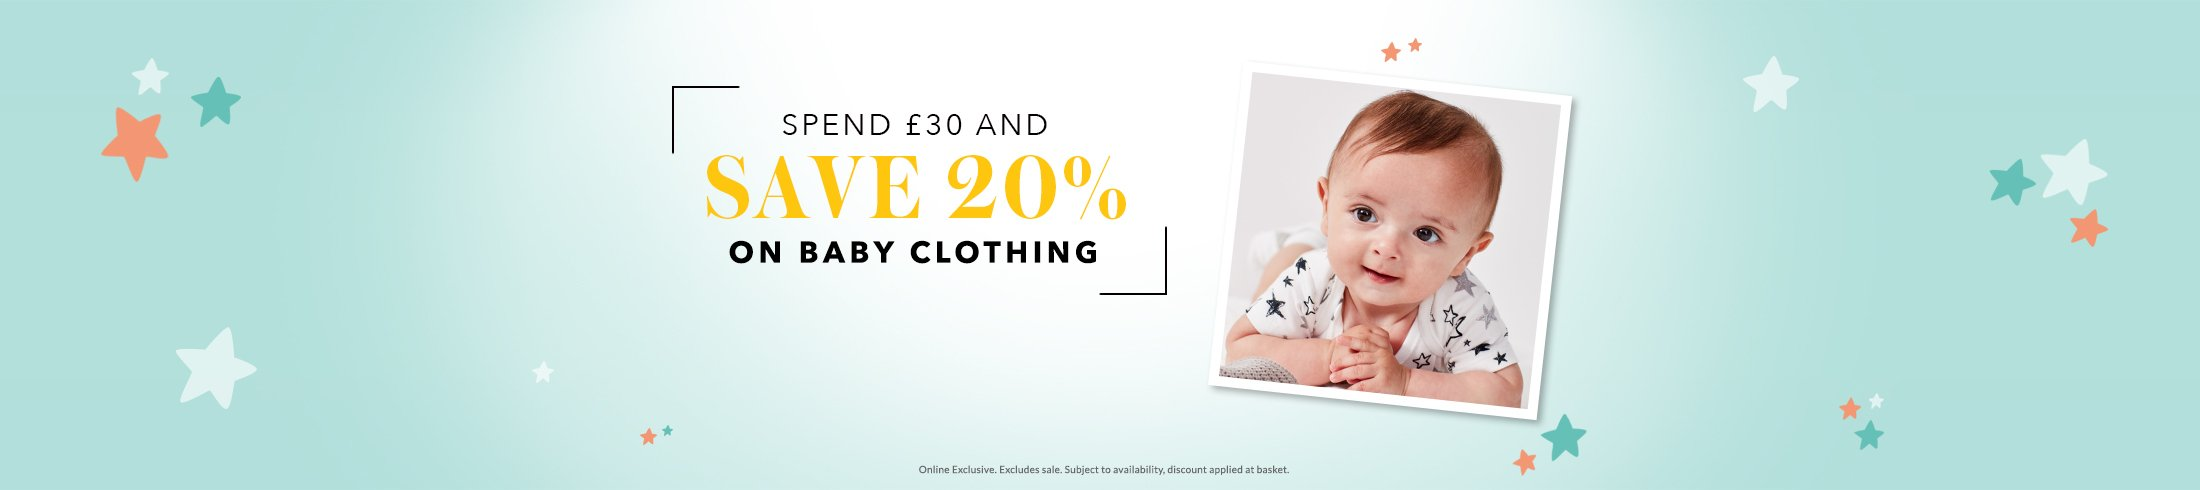 Spend £30 and save 20% on all baby essentials